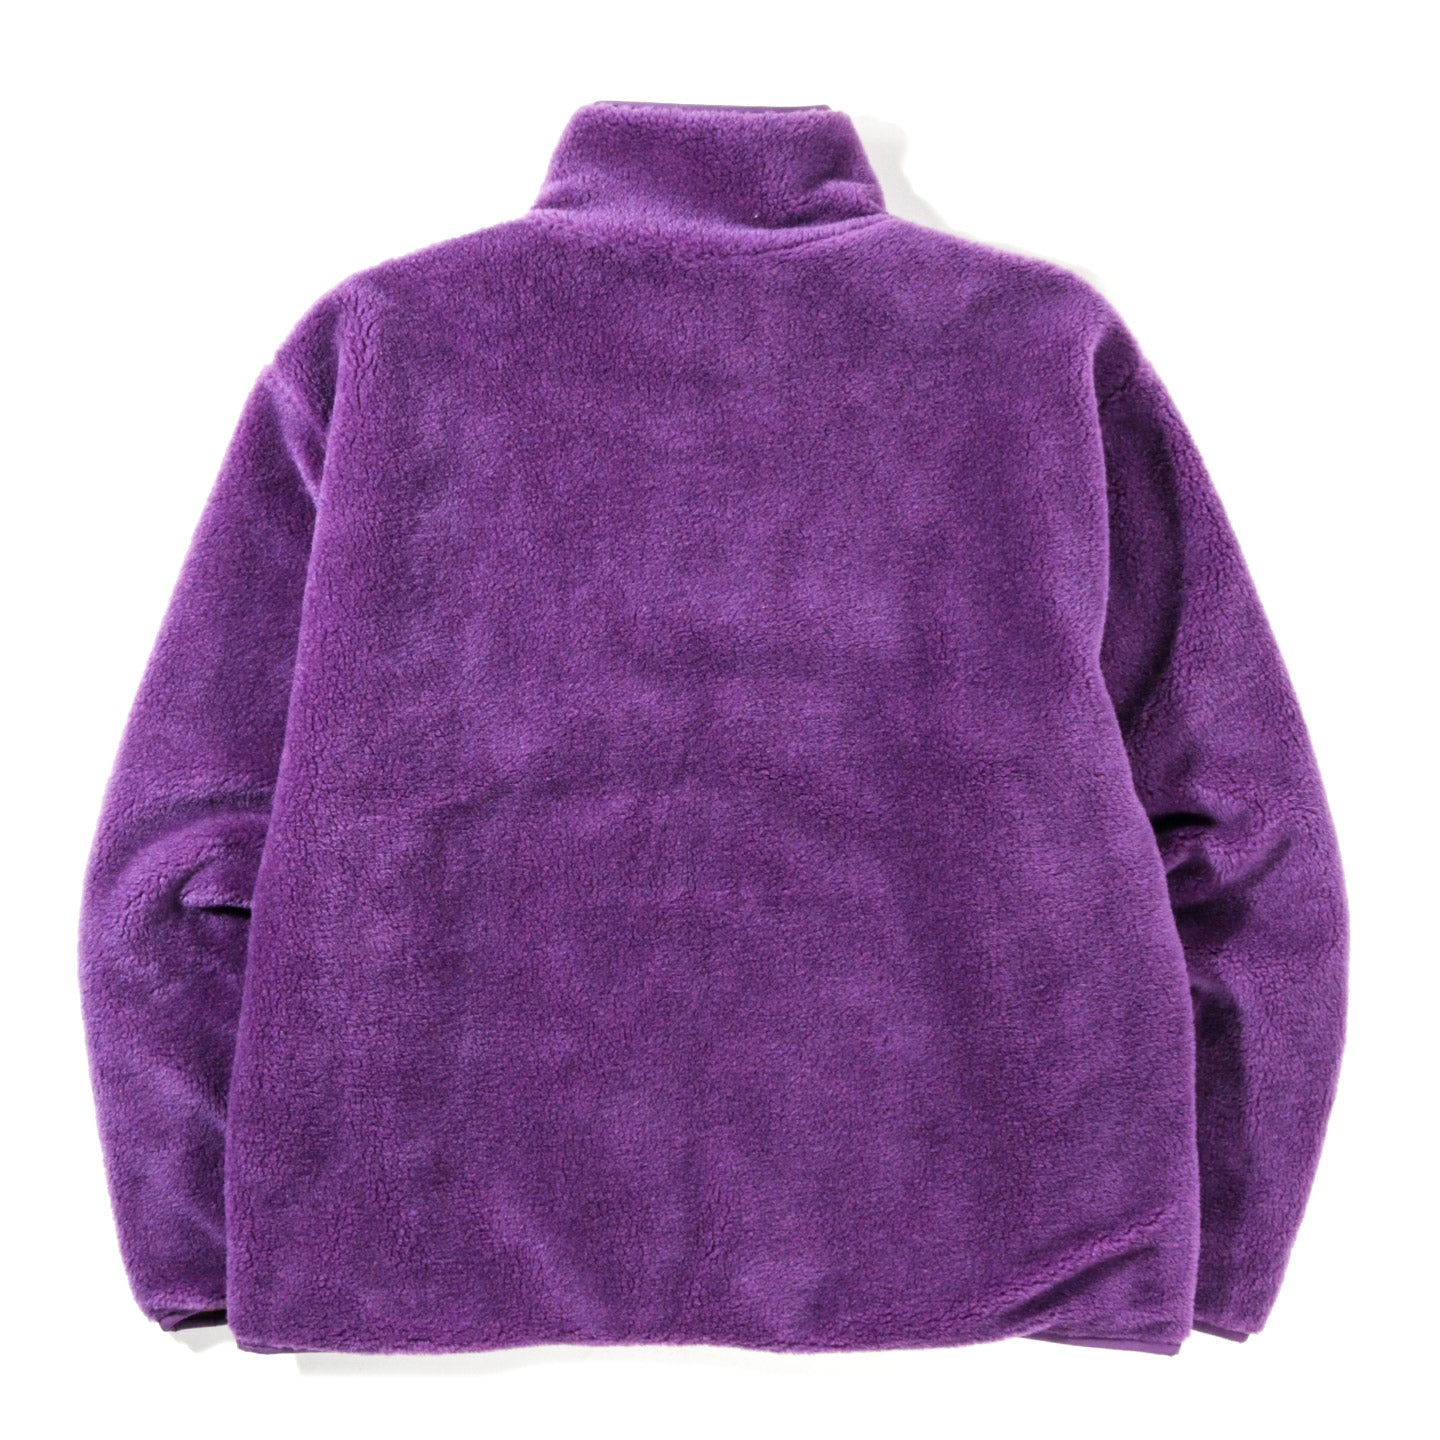 CARNE BOLLENTE WHEN HARRY WET SALLY FLEECE JACKET PURPLE